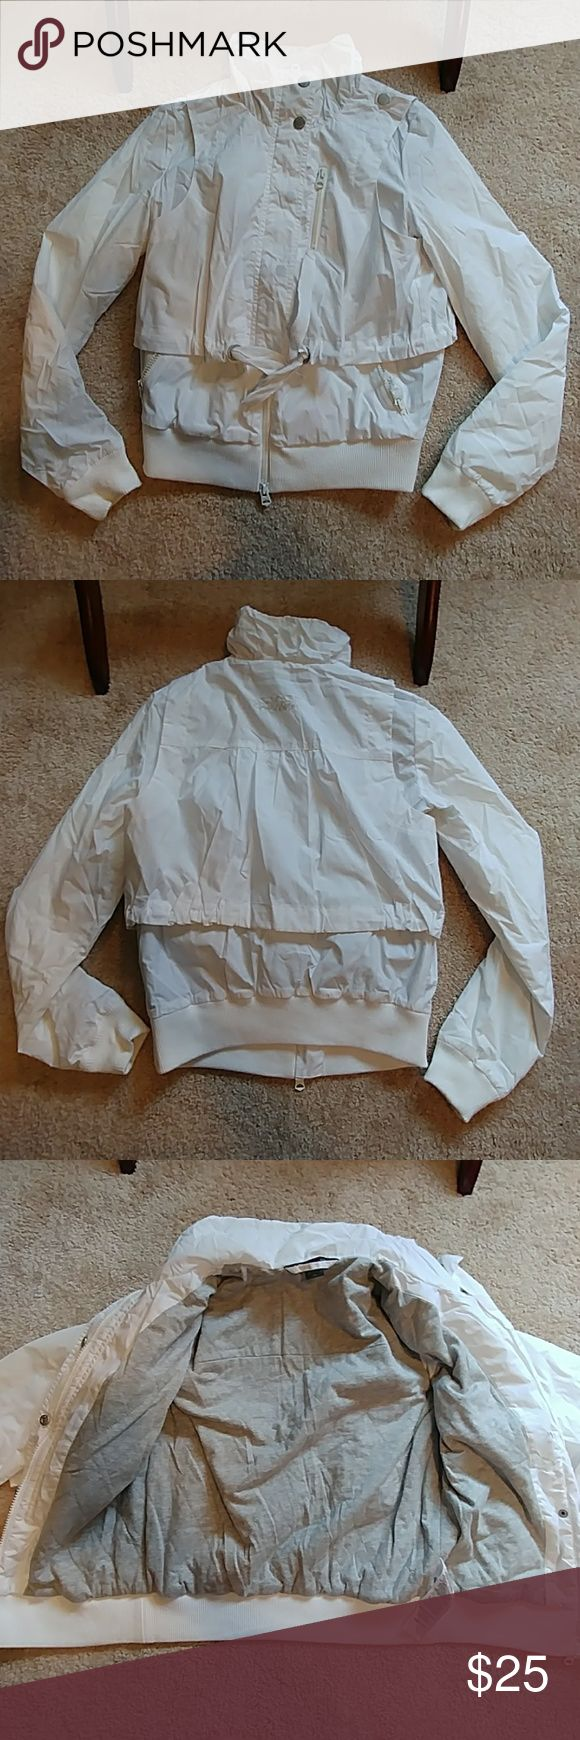 ARMANI EXCHANGE JACKET ARMANI EXCHANGE Jacket!!! It does have tiny dirt marks from stored in closet. Looks brand new, only worn once. Armani Exchange Jackets & Coats